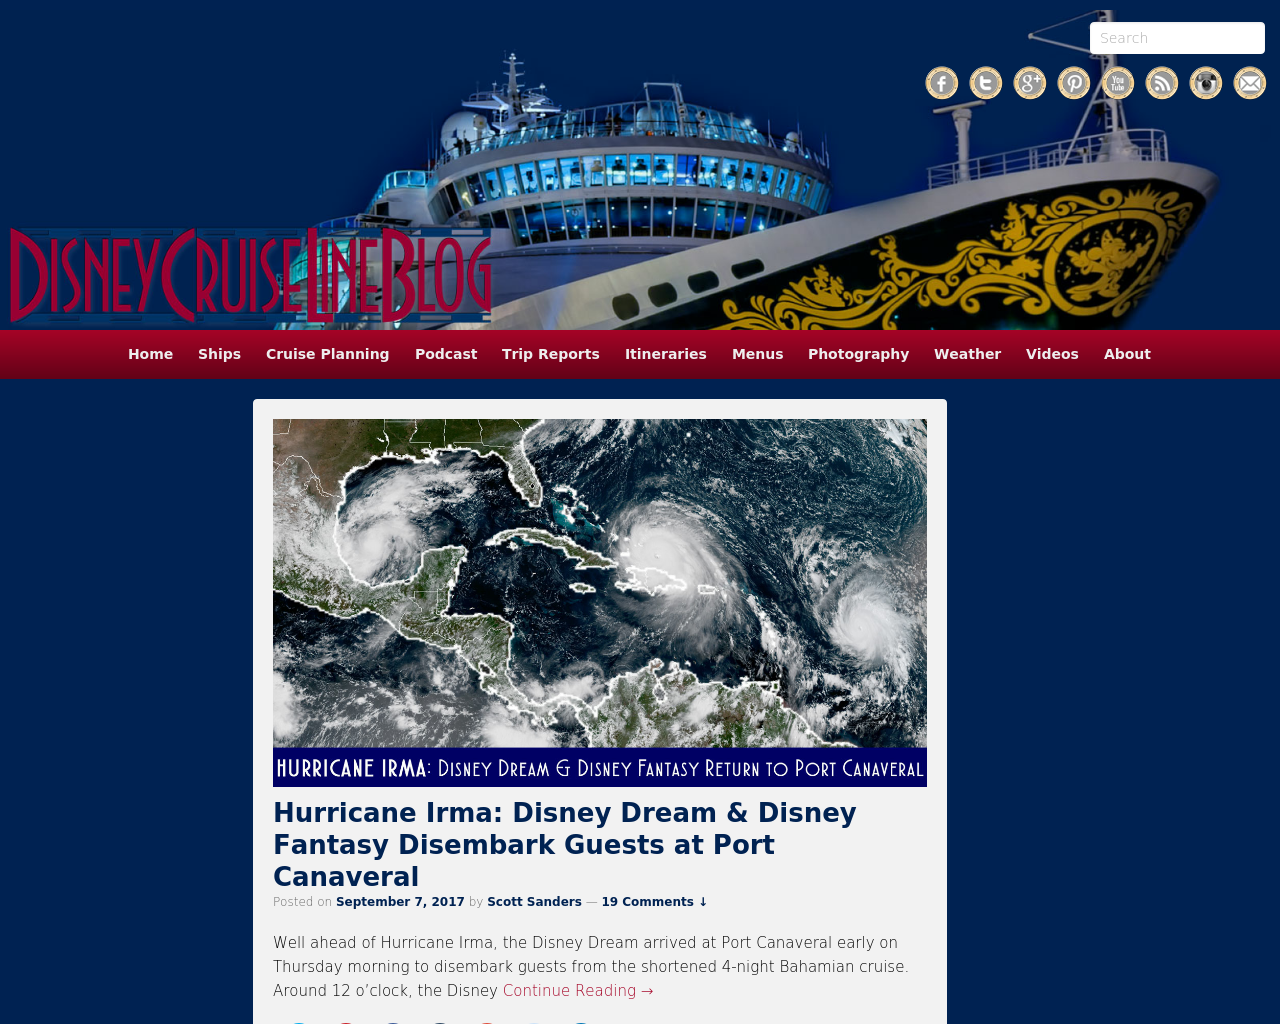 The-Disney-Cruise-Line-Blog-Advertising-Reviews-Pricing